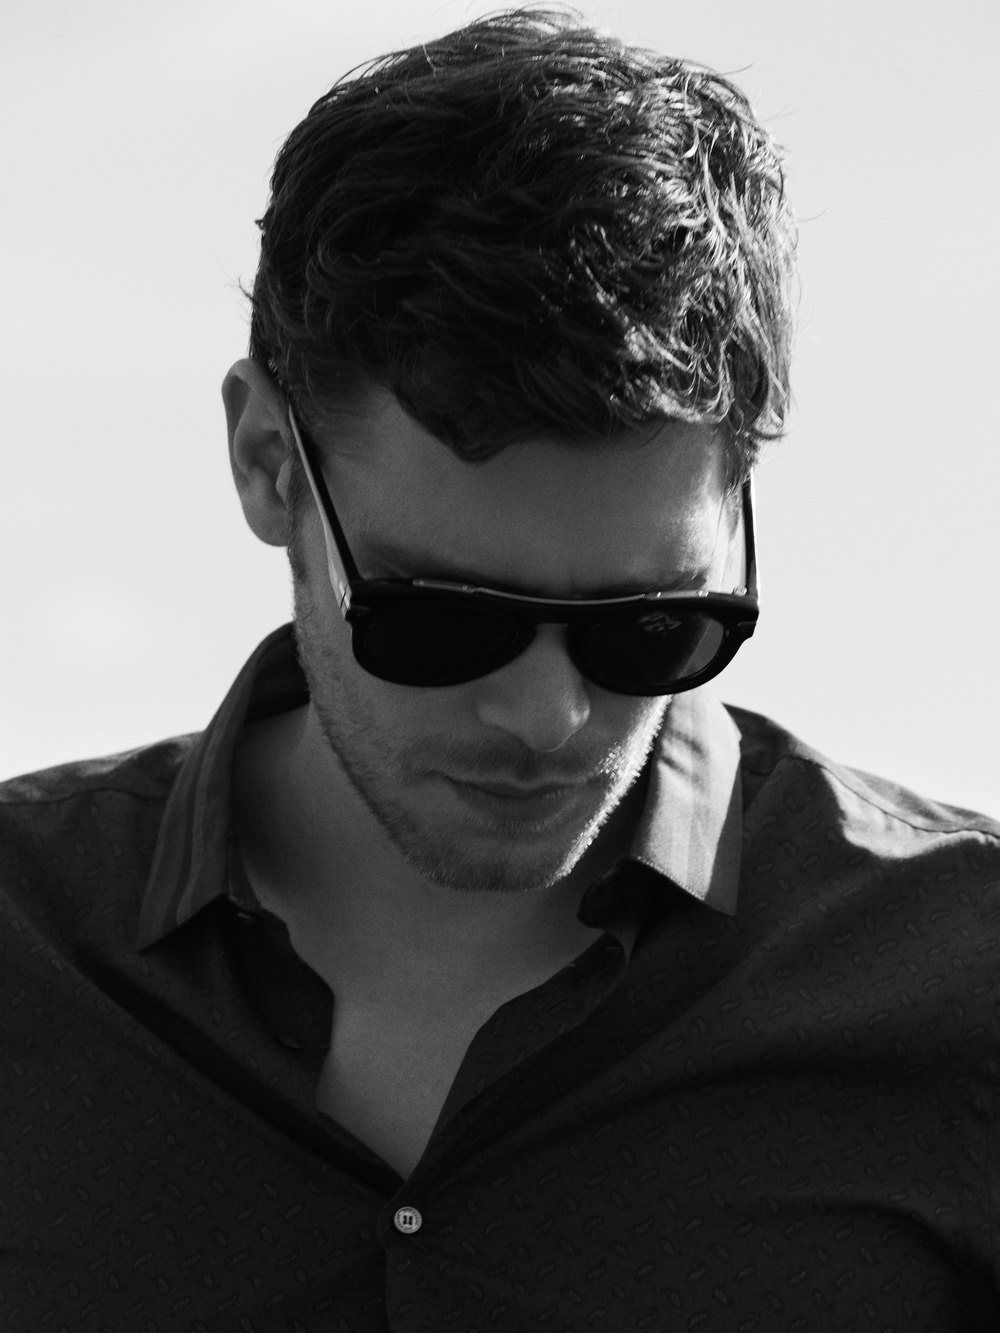 Top by    BURBERRY LONDON    ,Sunglasses by  G-STAR RAW  .